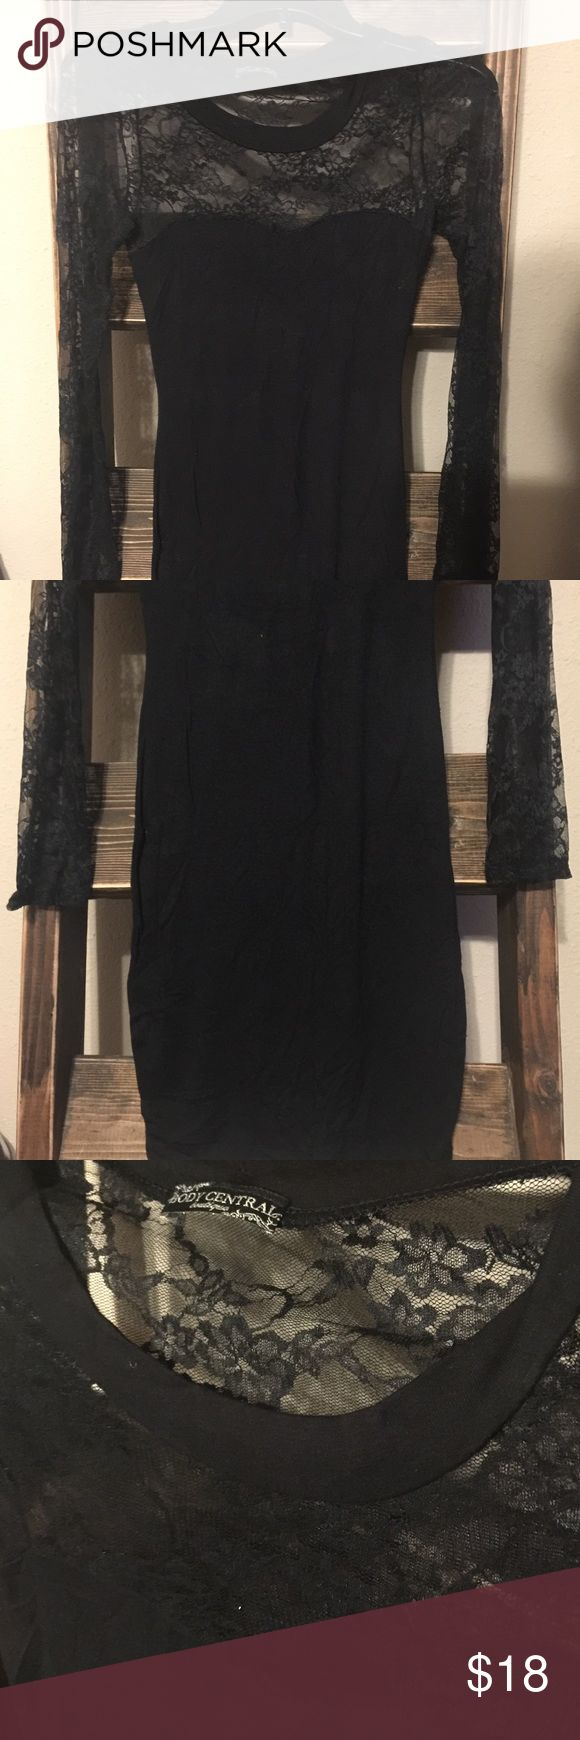 "Body Central Black Sheer Lace Top Fancy Dress Body Central Women's Small Black Sheer Lace Top, Dress. 96% rayon and 4% spandex. Used but in good condition. No rips, stains or tears. Bust 14"" and 34"" in length. Long sleeves. Body Central Dresses Long Sleeve"